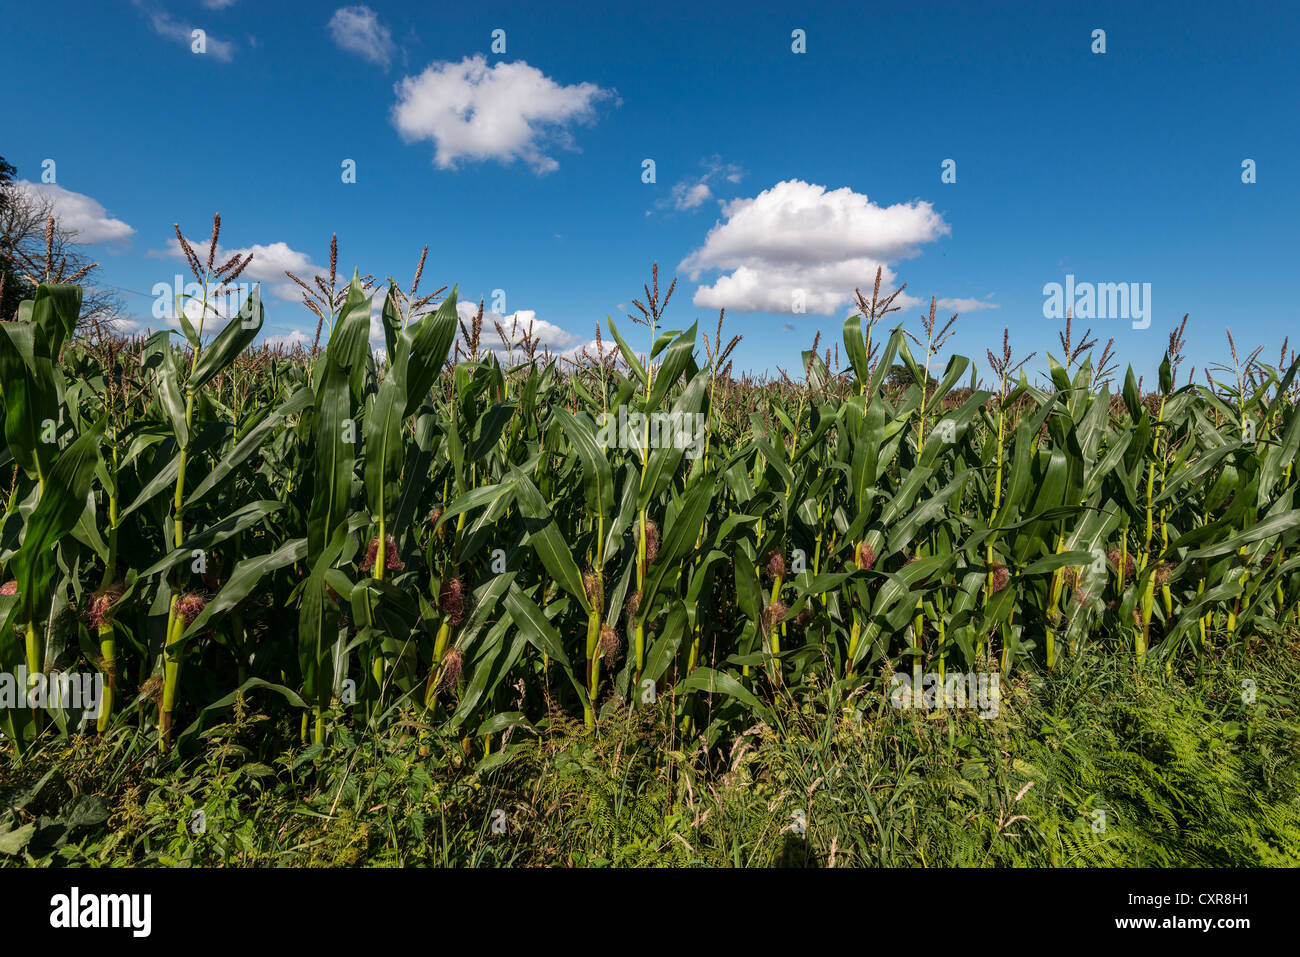 SWEET CORN/MAIZE GROWING IN  FIELD AGAINST BLUE SKY WITH CLOUDS IN GLOUCESTERSHIRE ENGLAND UK FIELD IS ON OFFA'S - Stock Image